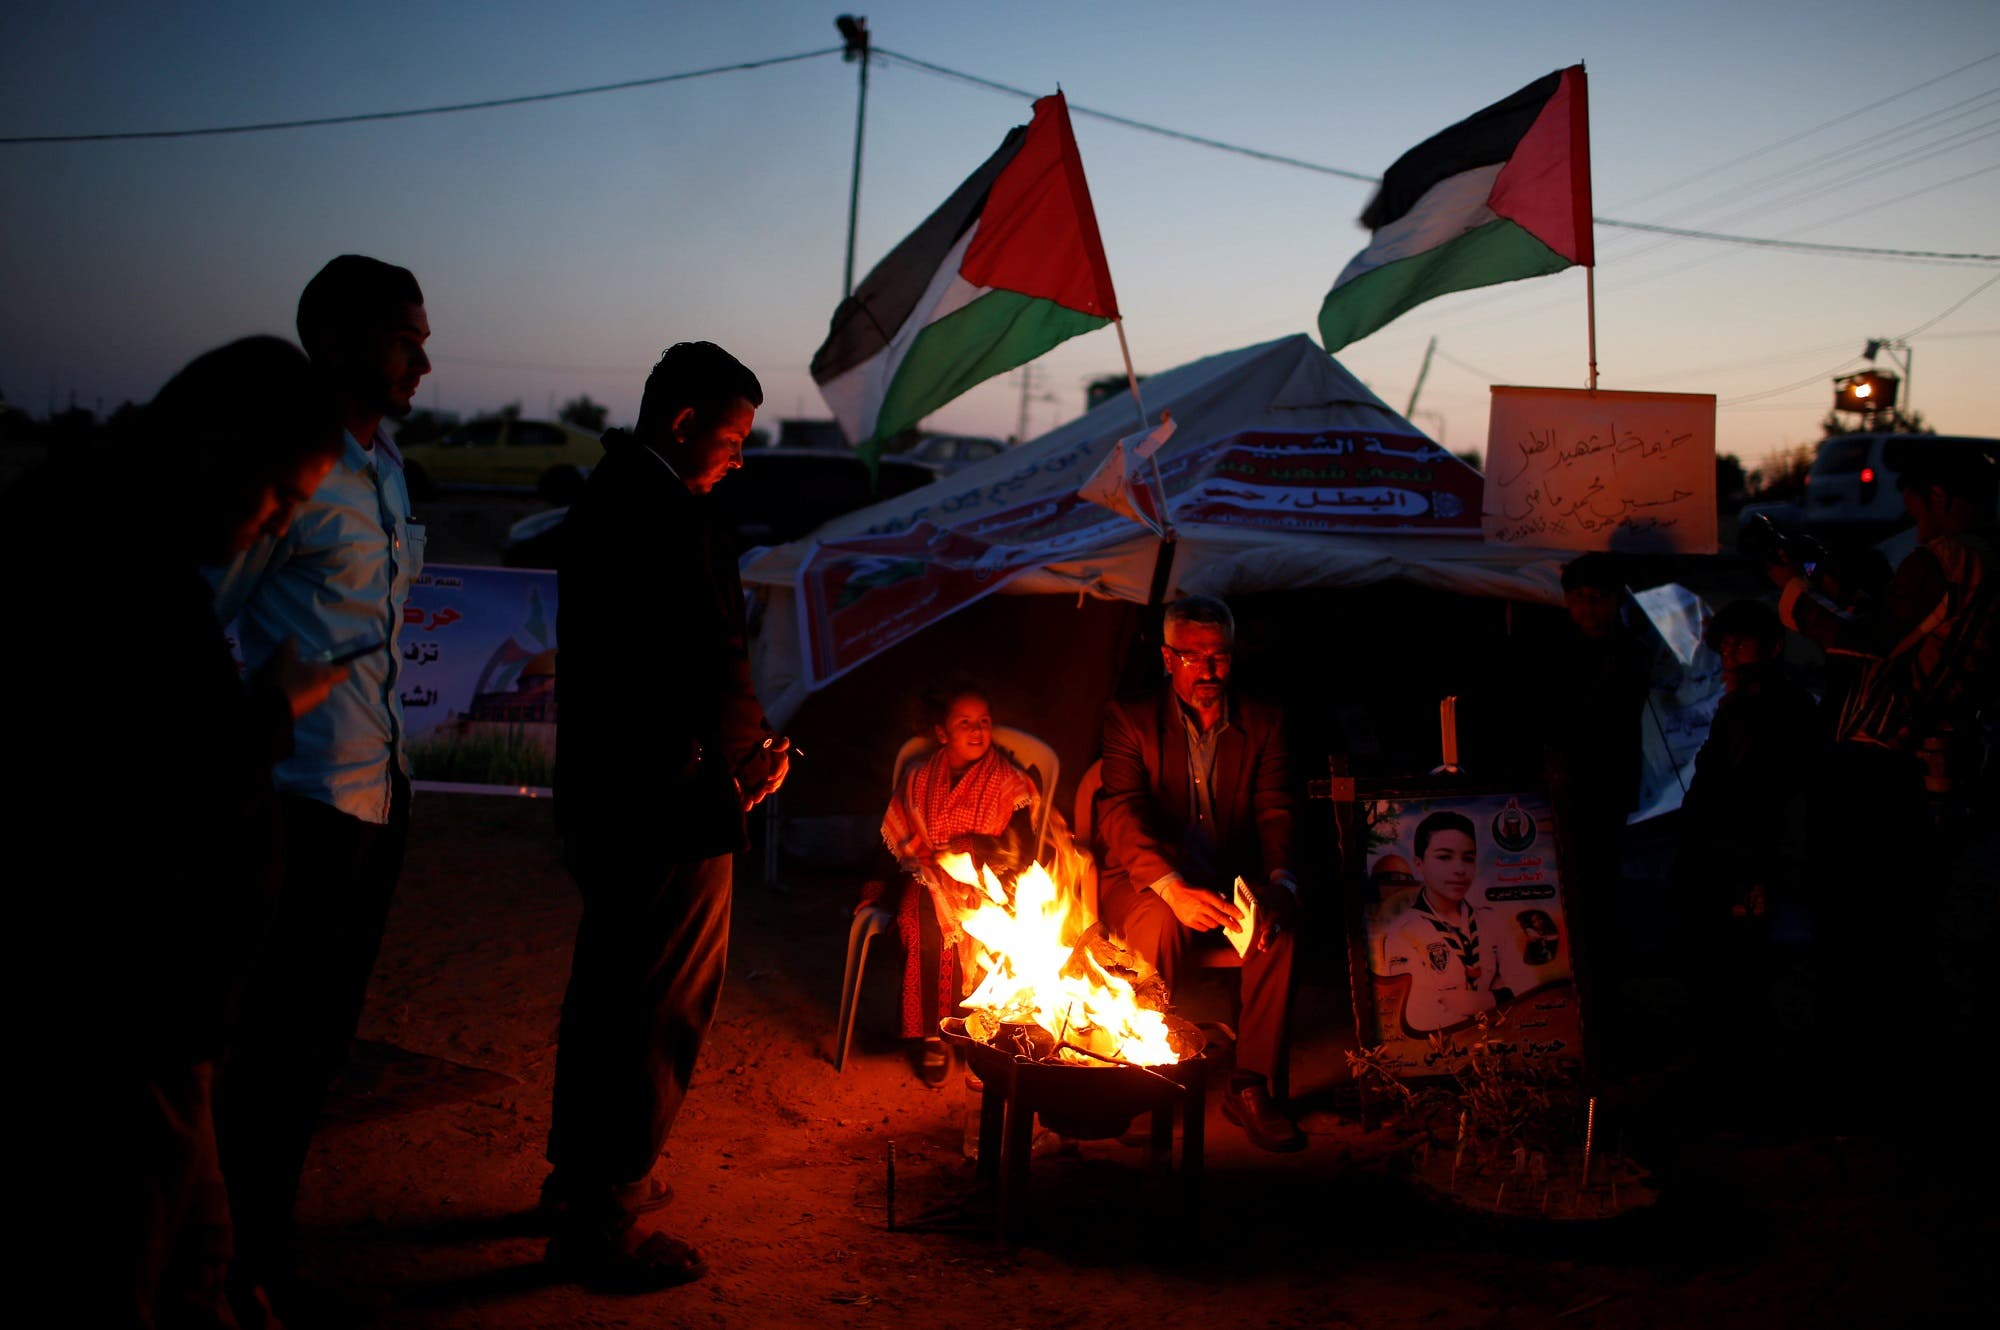 People participate in a symbolic birthday party for Hussein Madi at a tent city protest east of Gaza City on April 9, 2018. (Reuters)